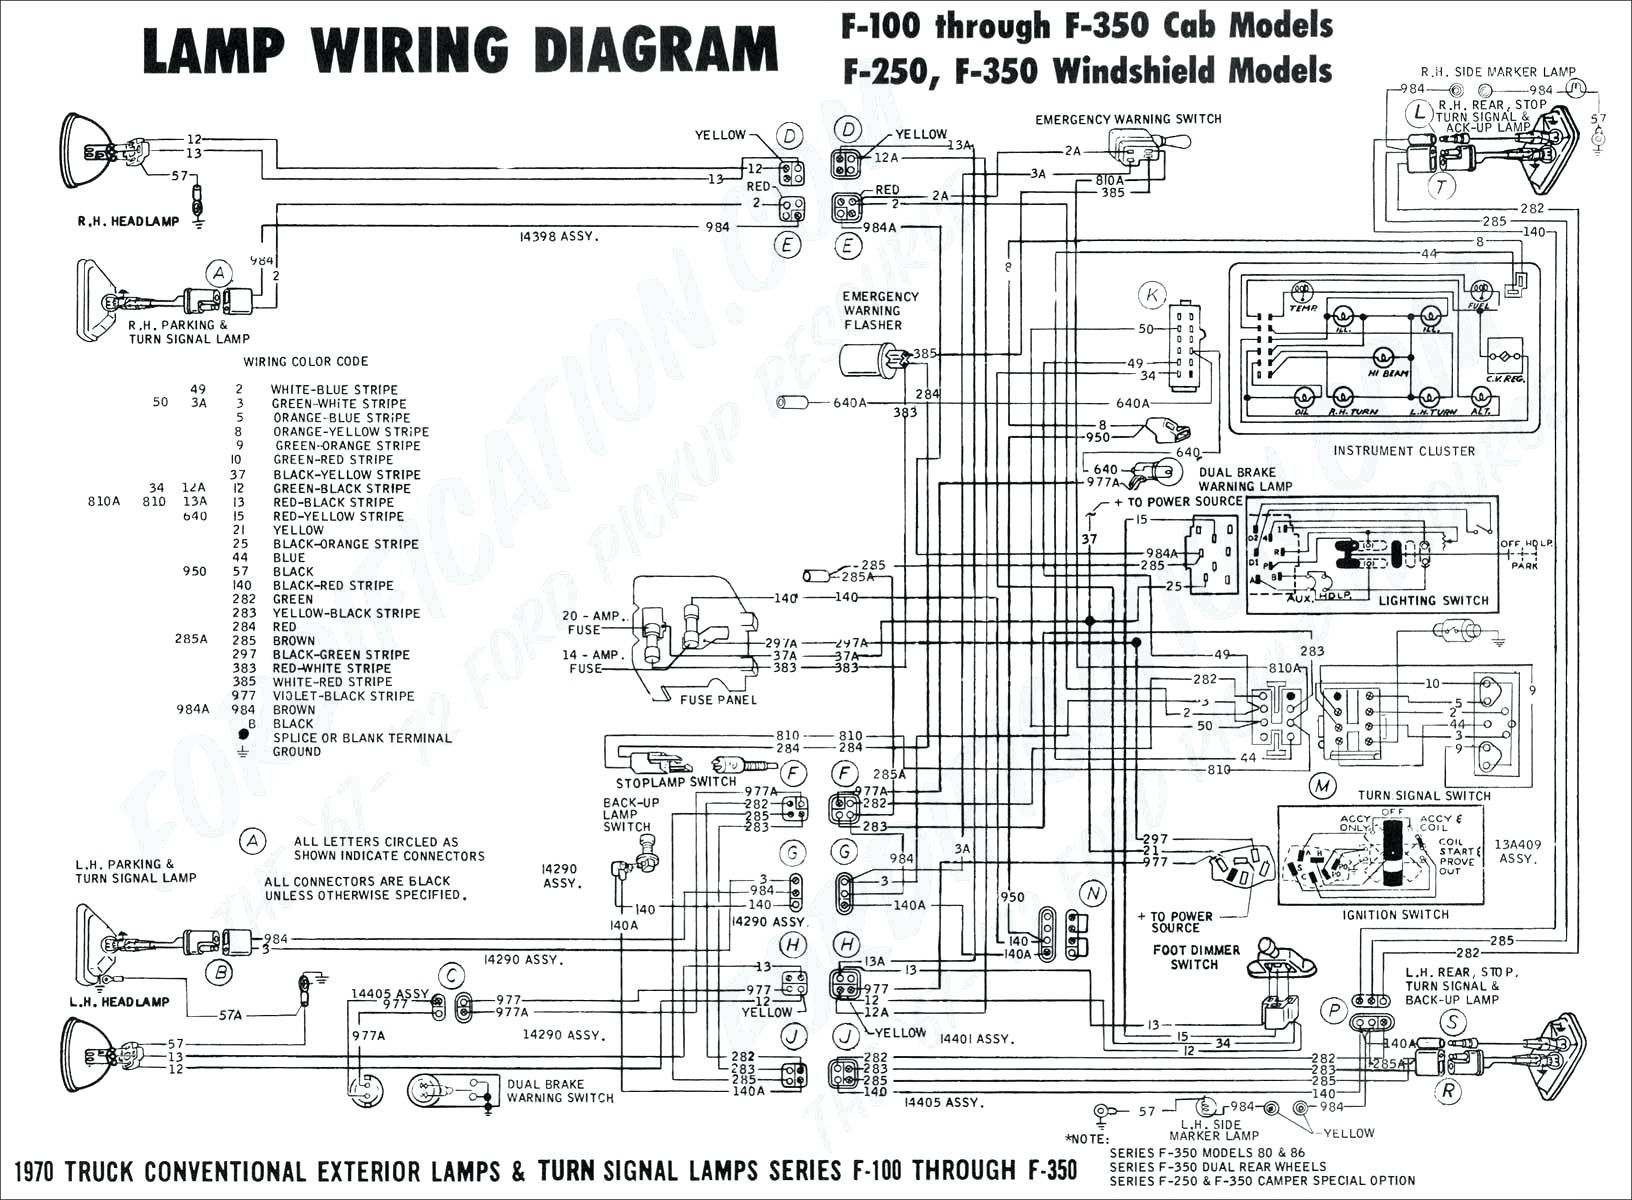 f250 wiring diagram Download-ford edge wiring diagram Download 1991 E4od Od button Wiring ford Truck Enthusiasts forums 18 DOWNLOAD Wiring Diagram 5-g